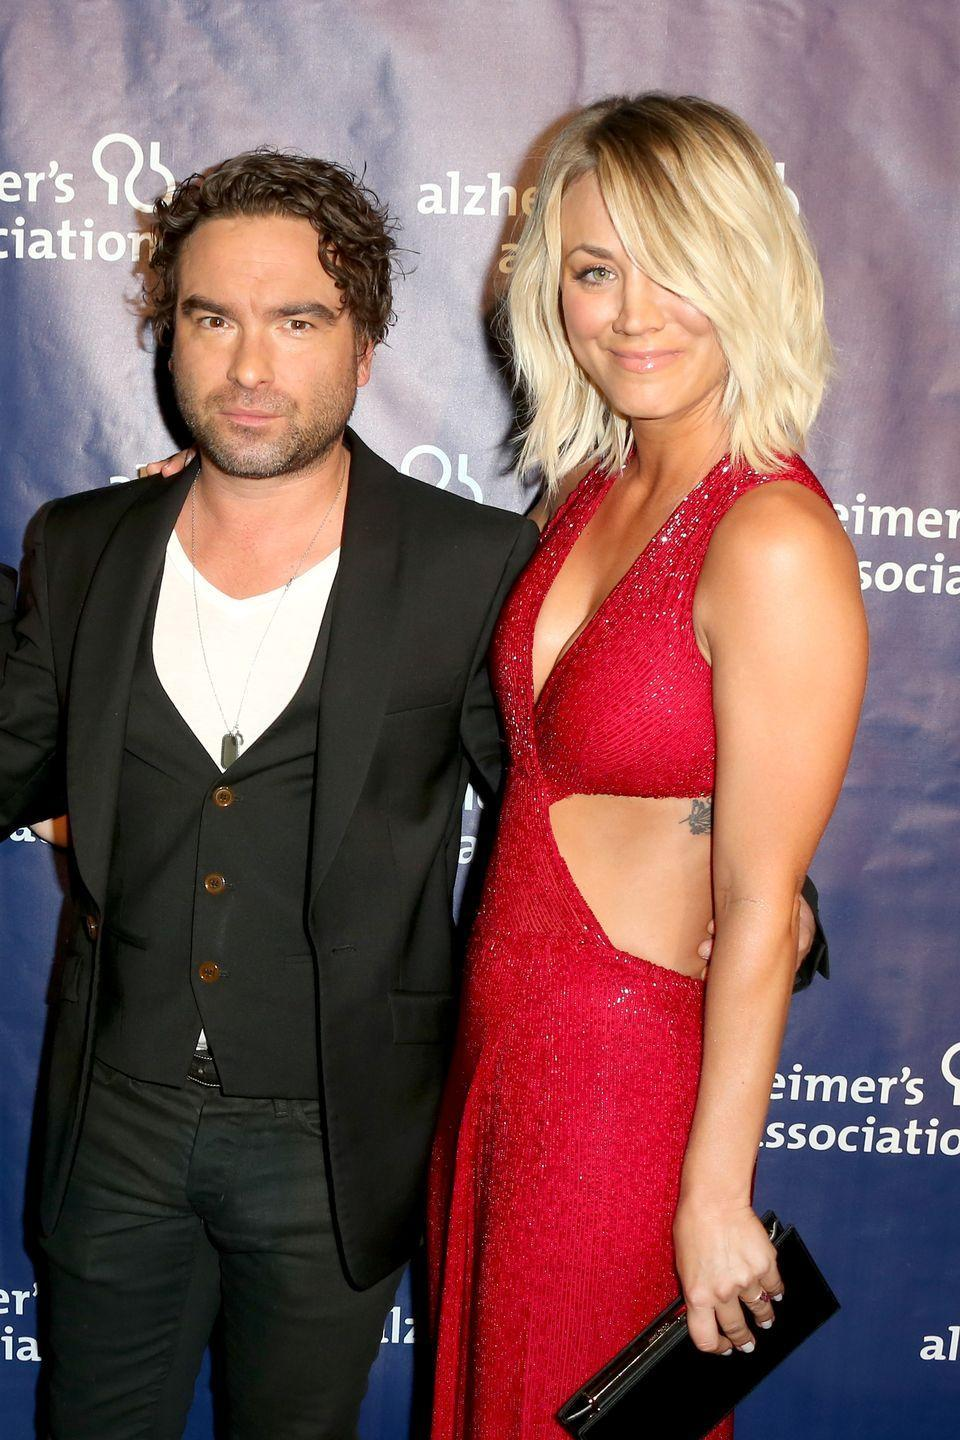 """<p>Fiction imitated reality when <em>The Big Bang Theory</em> co-stars Cuoco and Galecki began dating in real life as their characters Penny and Leonard were dating on screen. After a two year relationship, they decided to go back to being 'just' friends <a href=""""http://www.huffingtonpost.com/entry/kaley-cuoco-johnny-galecki-dating-rumors_us_561fdae1e4b028dd7ea70059"""" rel=""""nofollow noopener"""" target=""""_blank"""" data-ylk=""""slk:in 2009"""" class=""""link rapid-noclick-resp"""">in 2009</a>. With the show about to start its 10th season, rumor has it that the on-screen couple might be getting back together in real-life, but we'll have to see about that.</p>"""